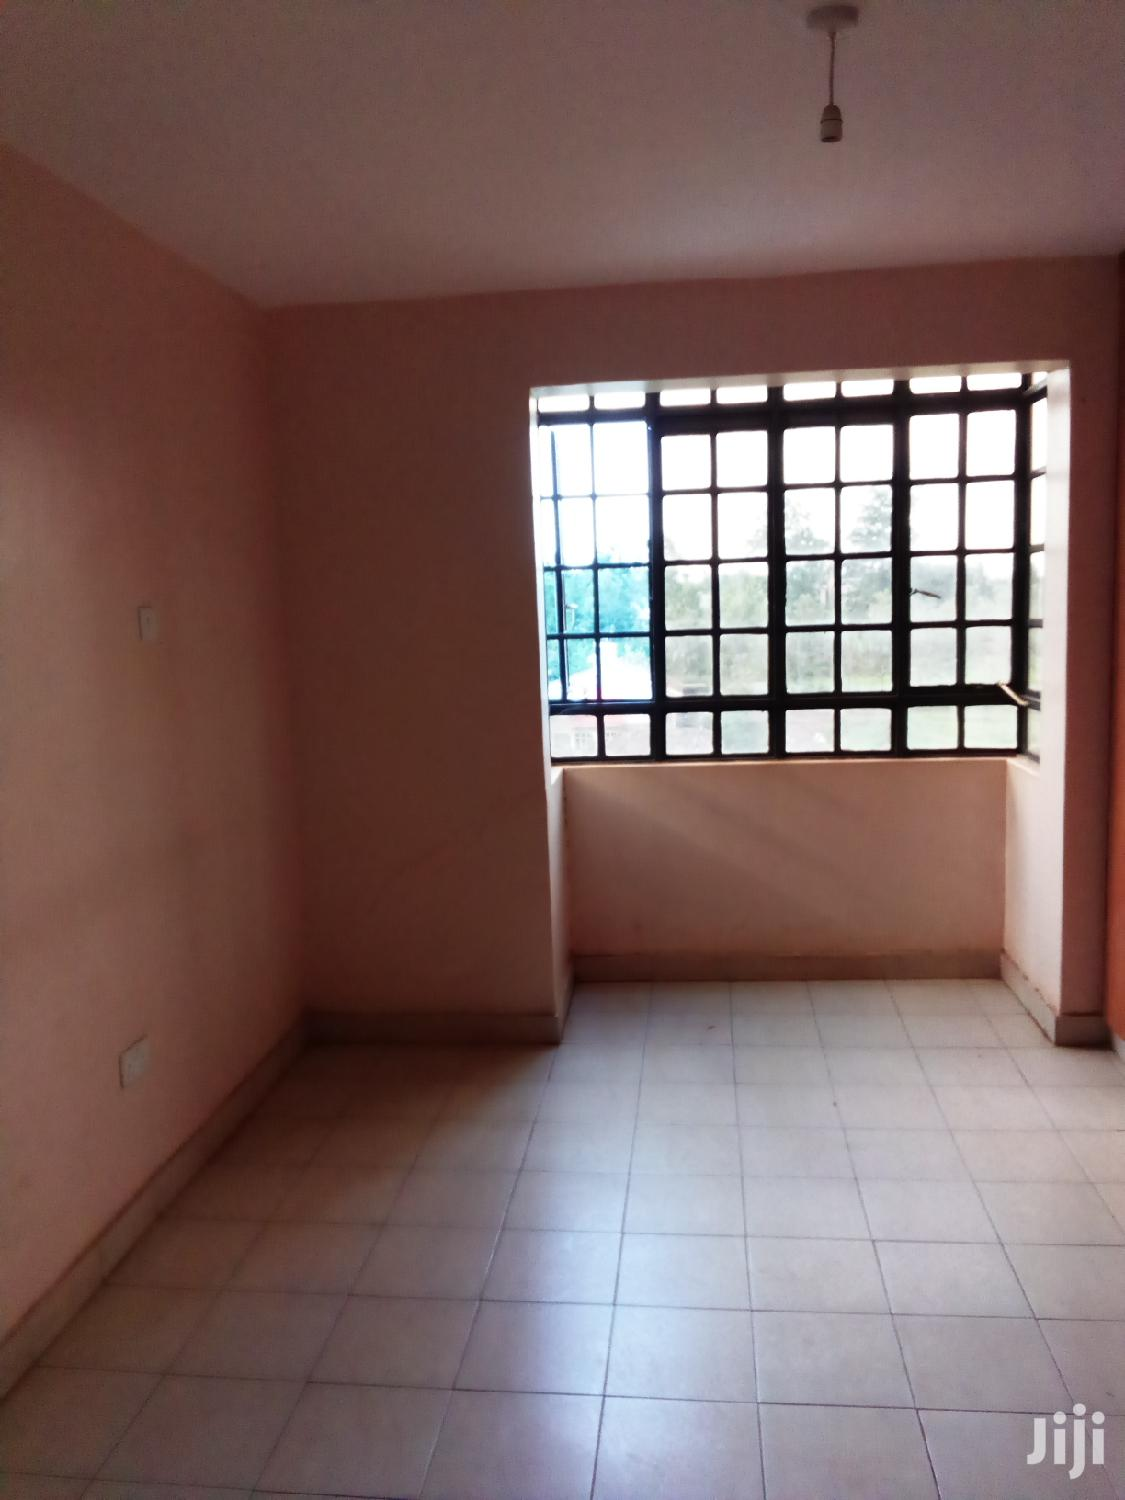 2 Bedroom,Master Ensuite Apartments Jacaranda Kamiti Road